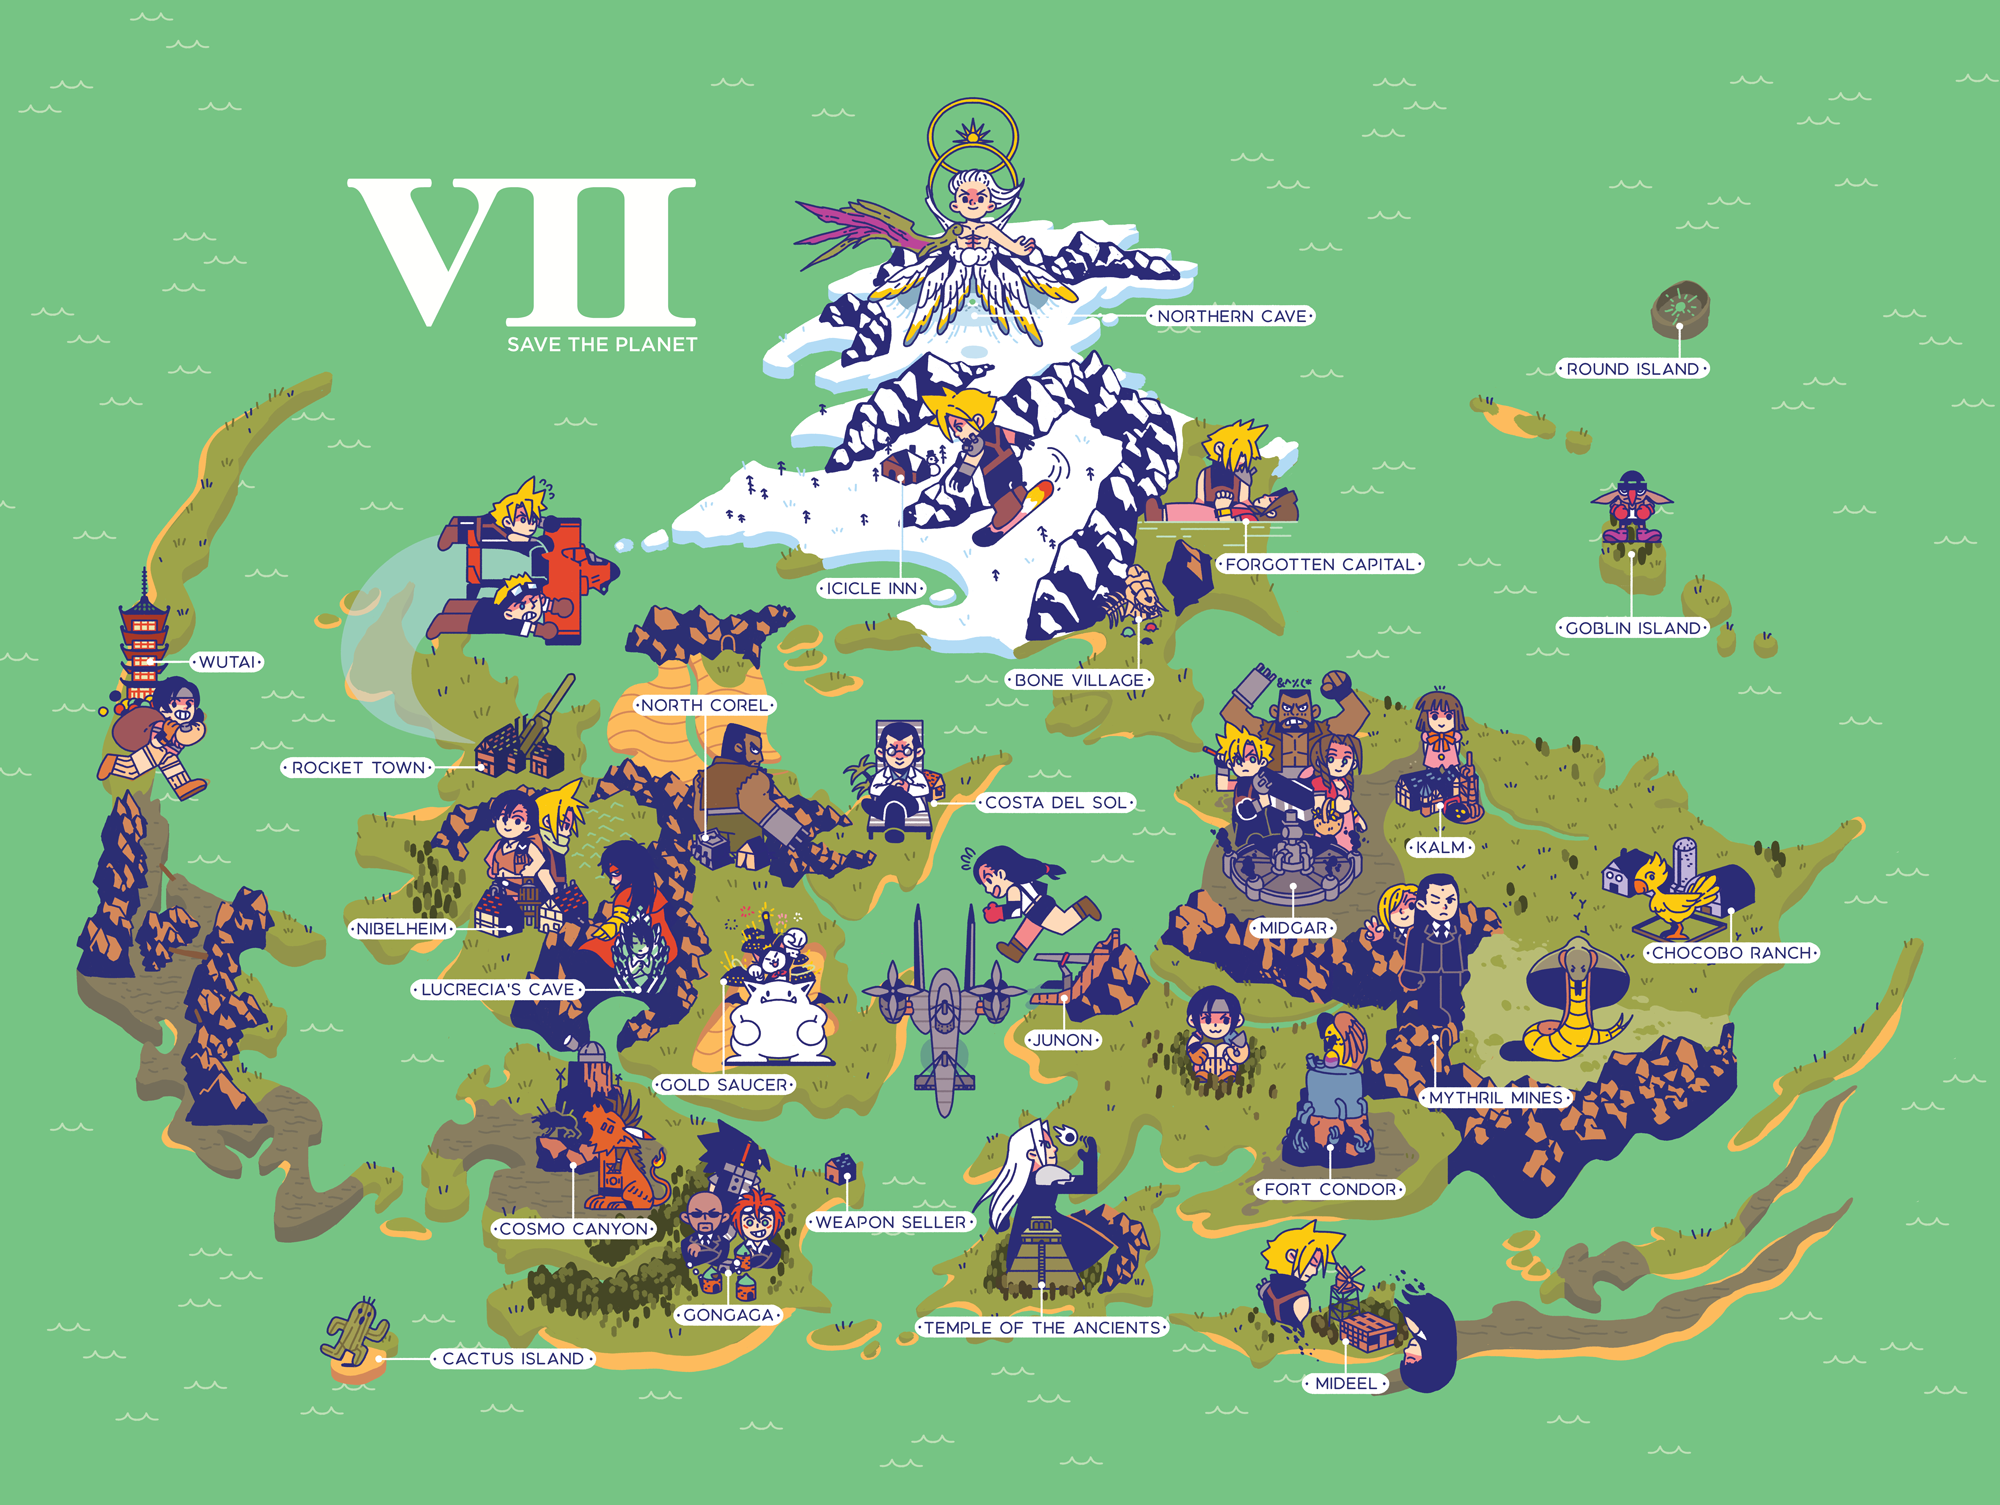 FF7 world map from ByronB Art in 2019 | Final fantasy vii ...